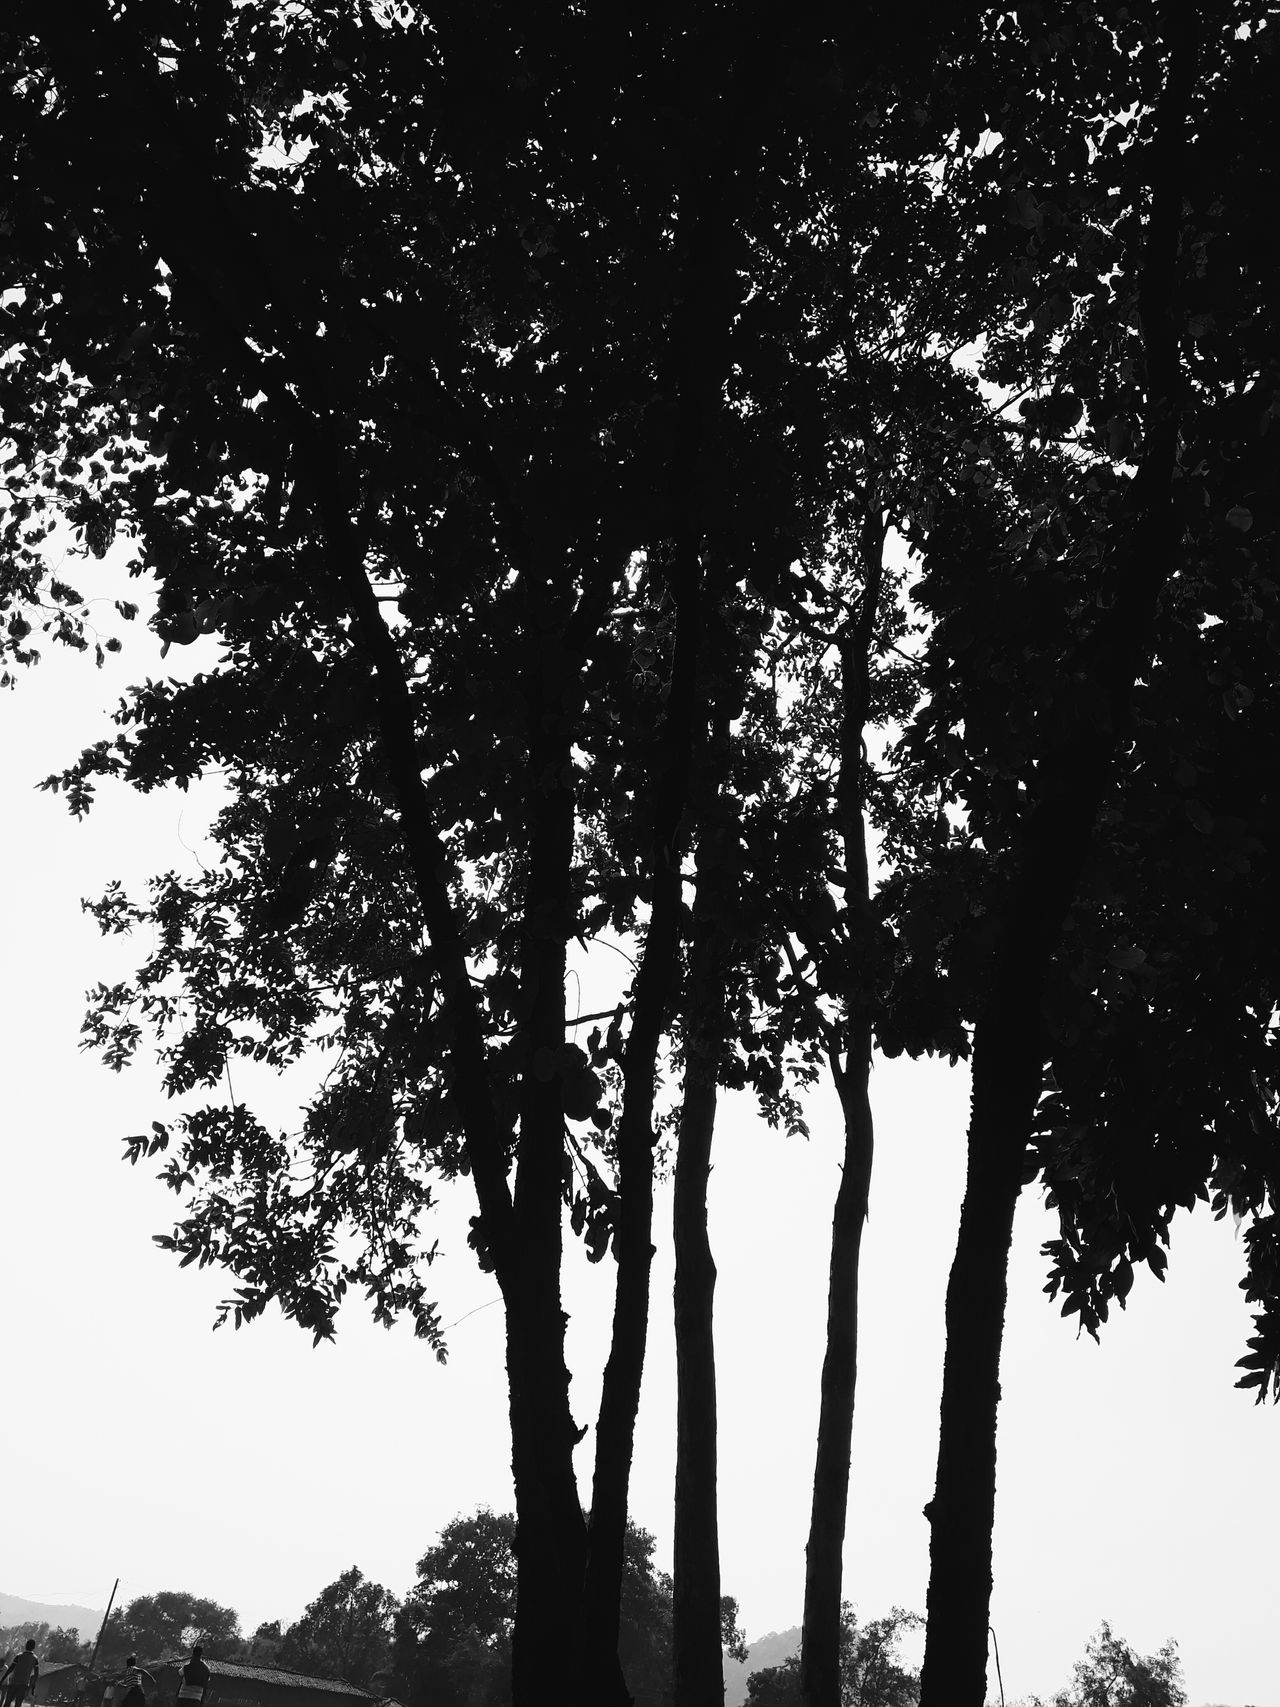 Tree Nature Sky Outdoors Beauty In Nature No People Low Angle View Branch Day Playing Match Tree Beauty In Nature Nature